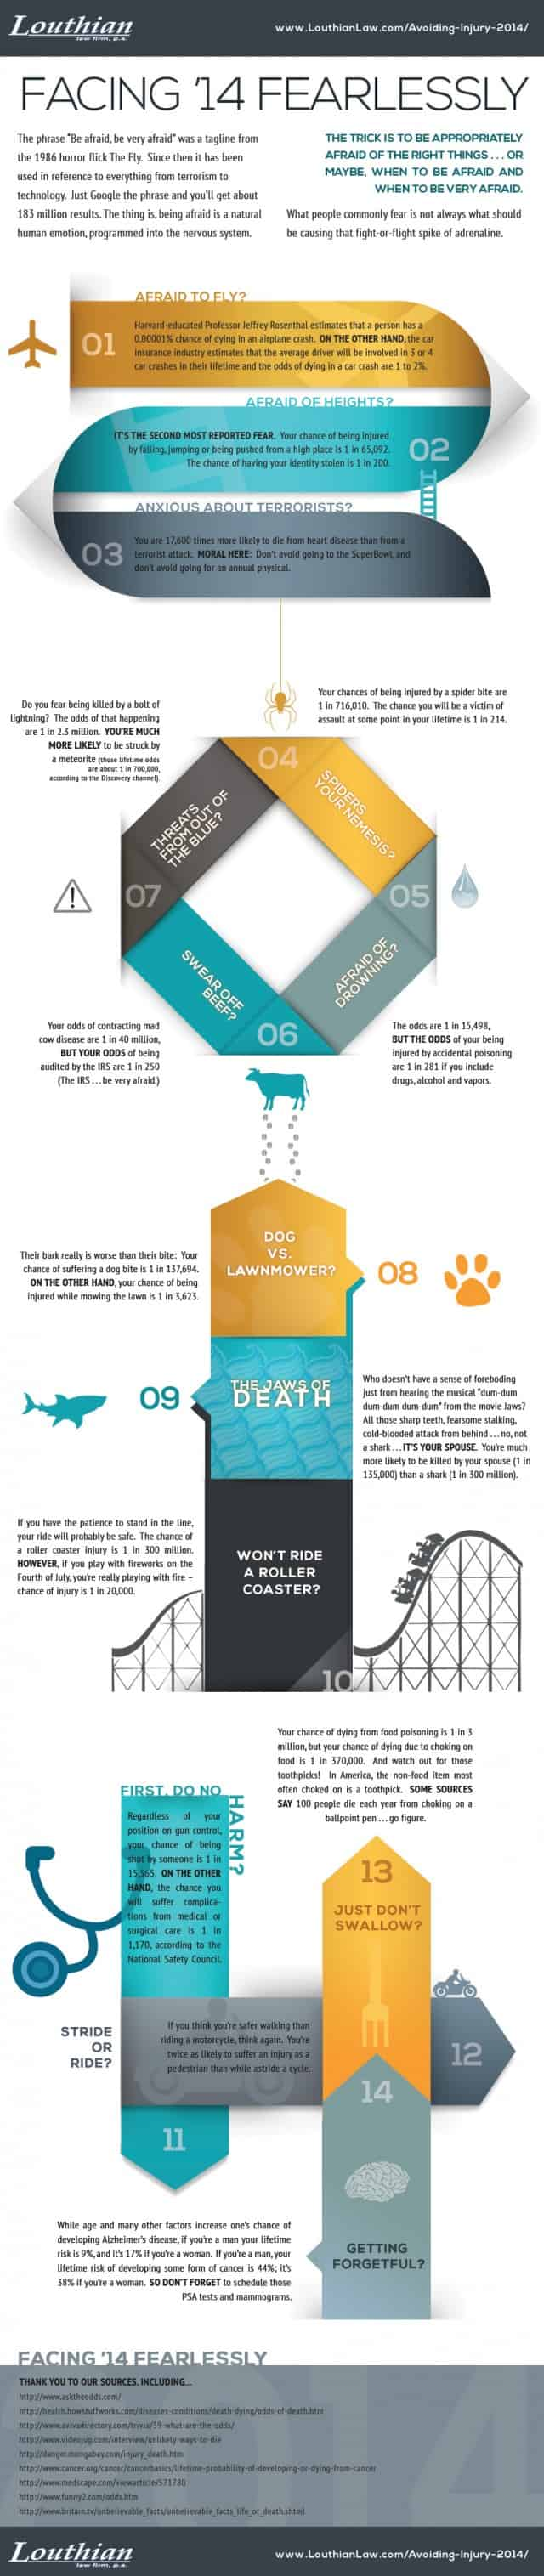 Louthian-Injury-Infographic_2014-640x3031